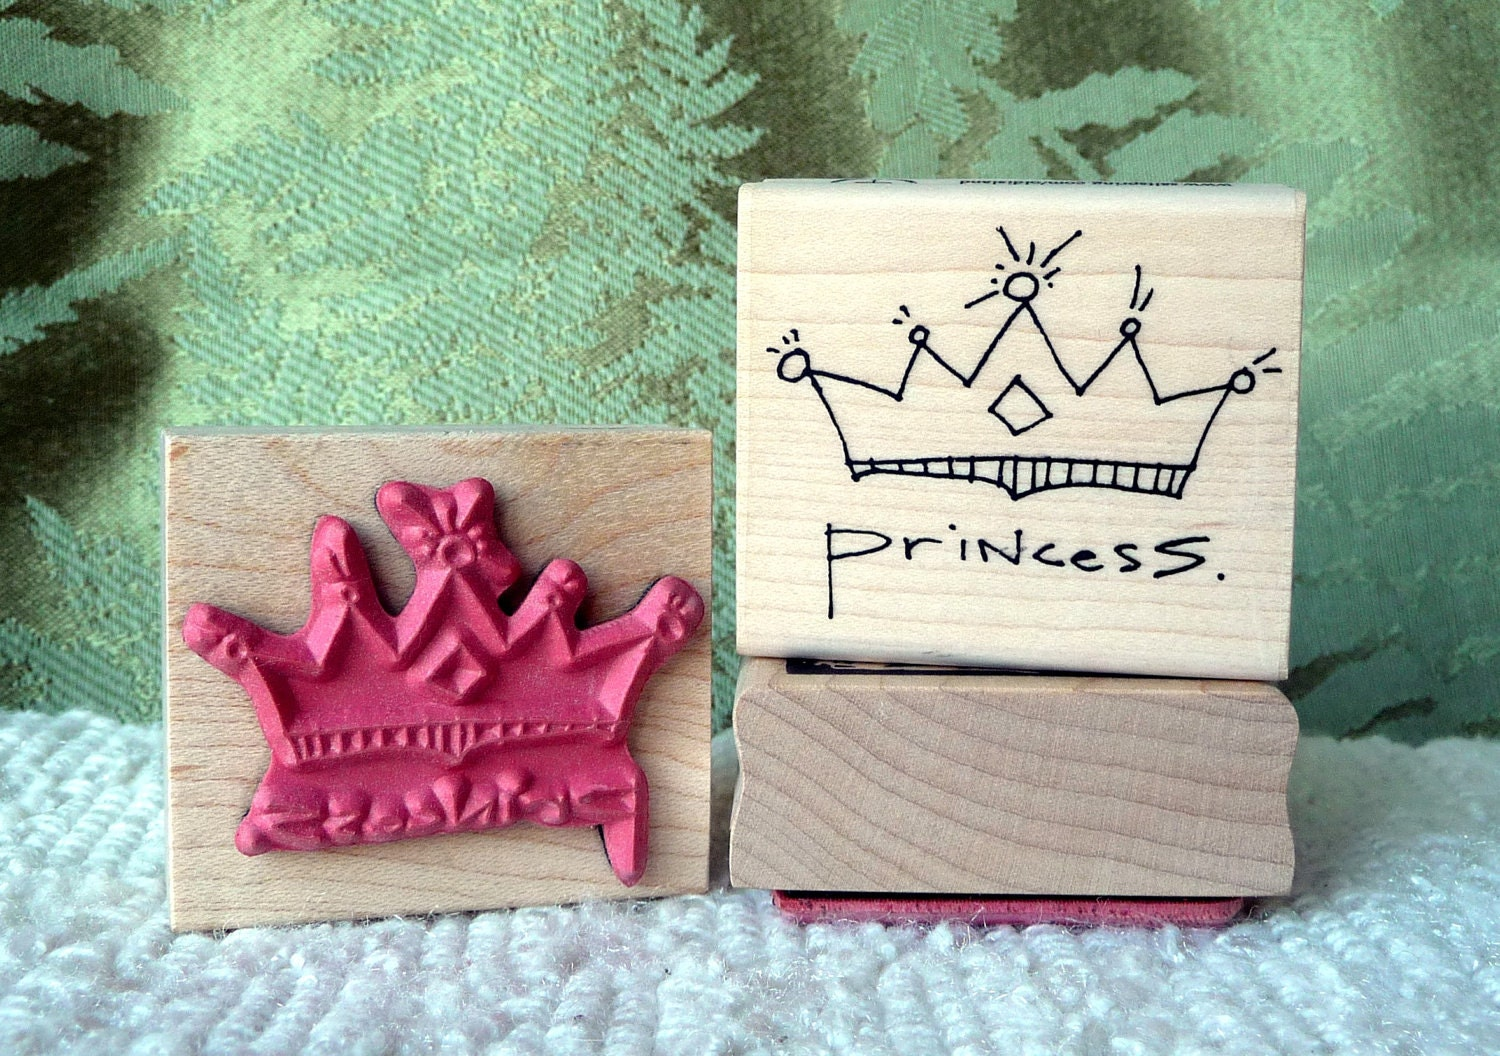 Princess Crown rubber stamp from oldislandstamps